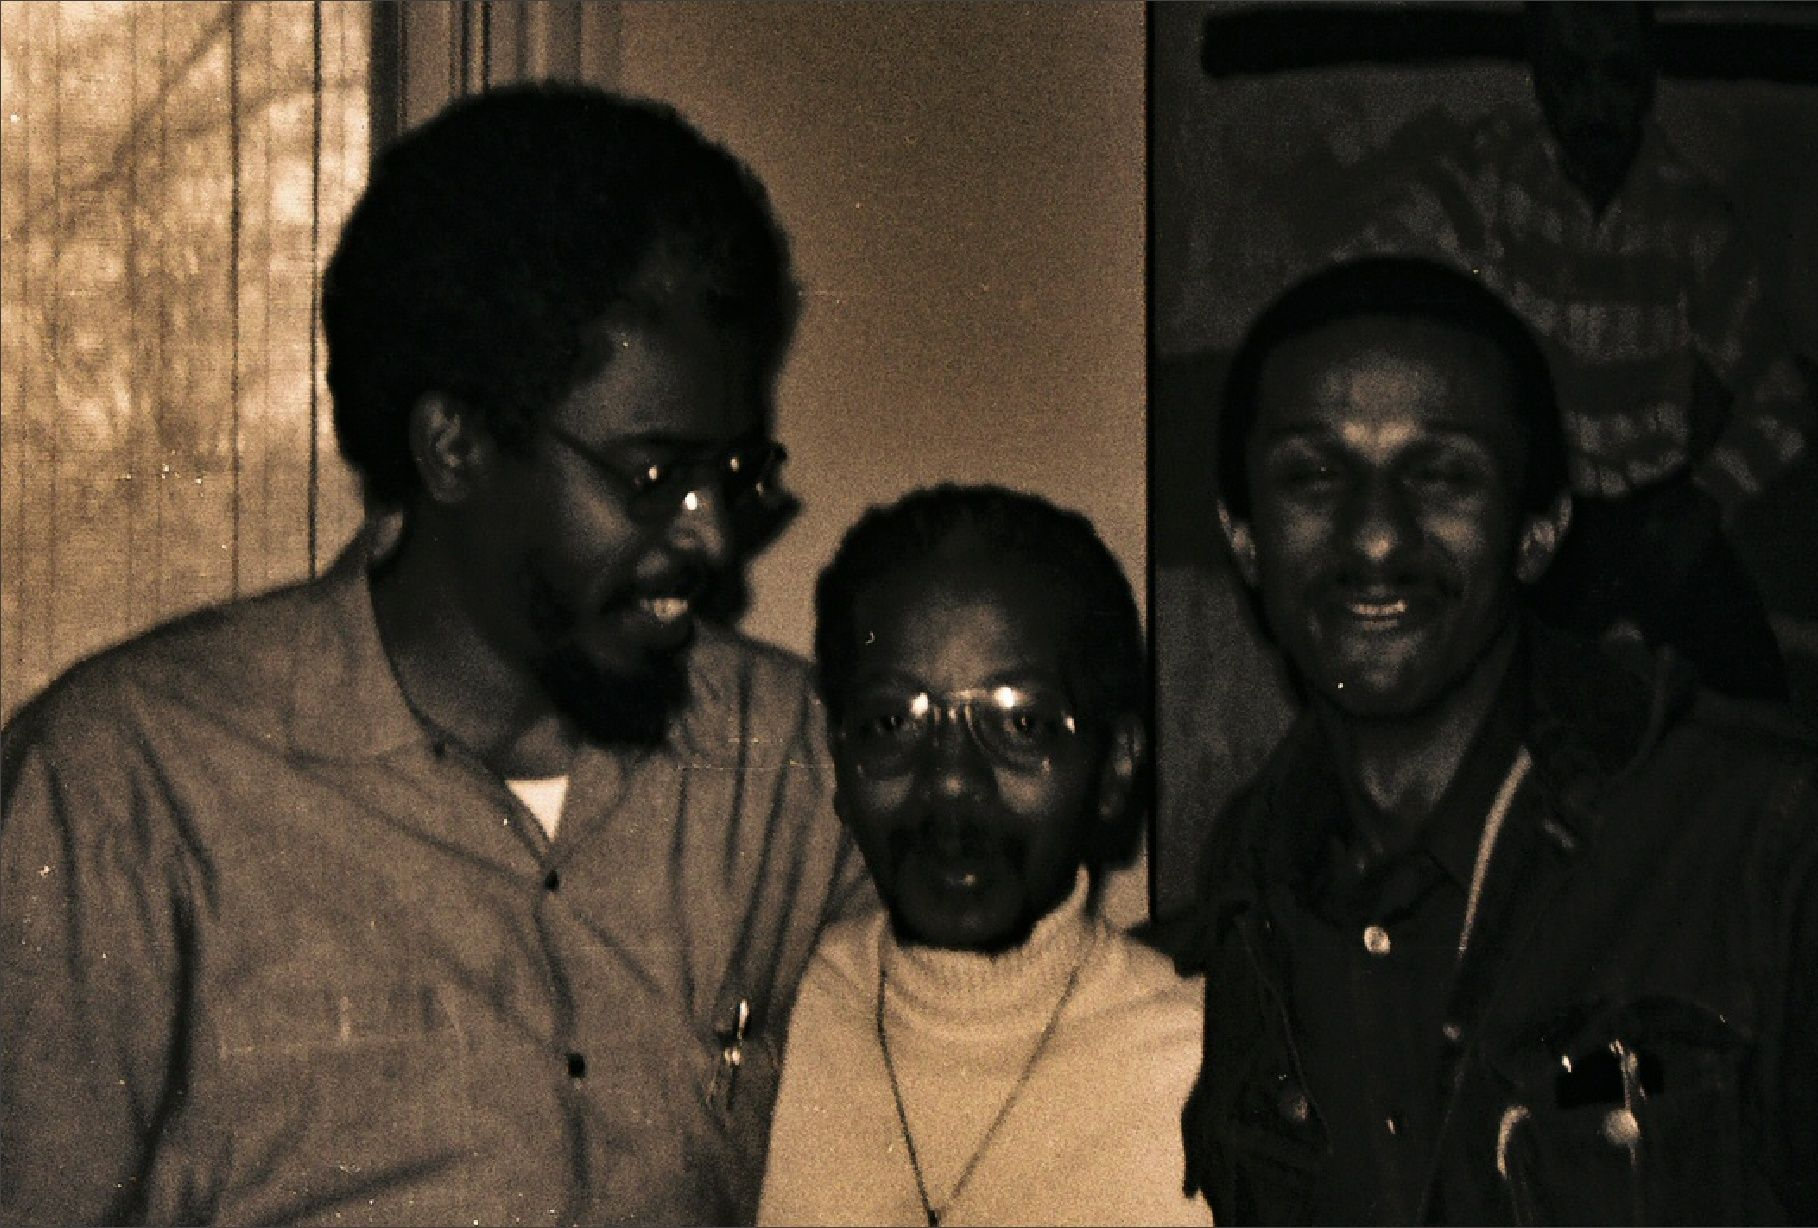 uncle ted .. Ted Jones on the right .. not sure who's in the middle.